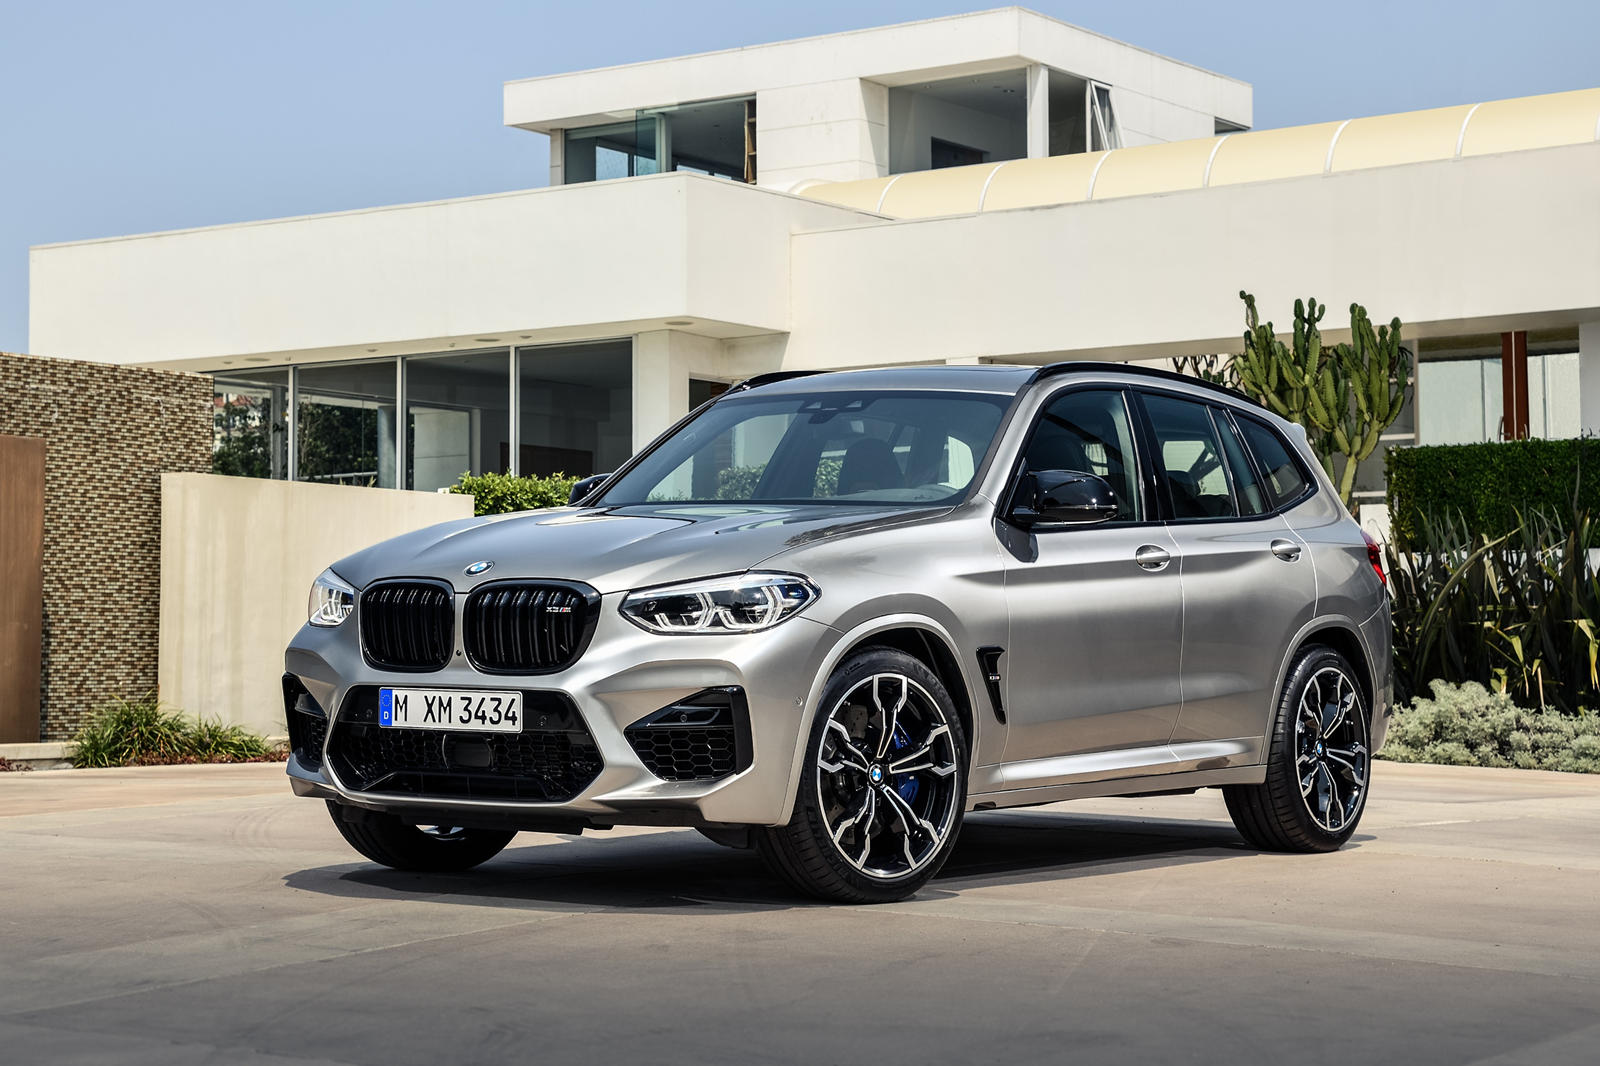 2020 BMW X3 M: Review, Trims, Specs, Price, New Interior ...